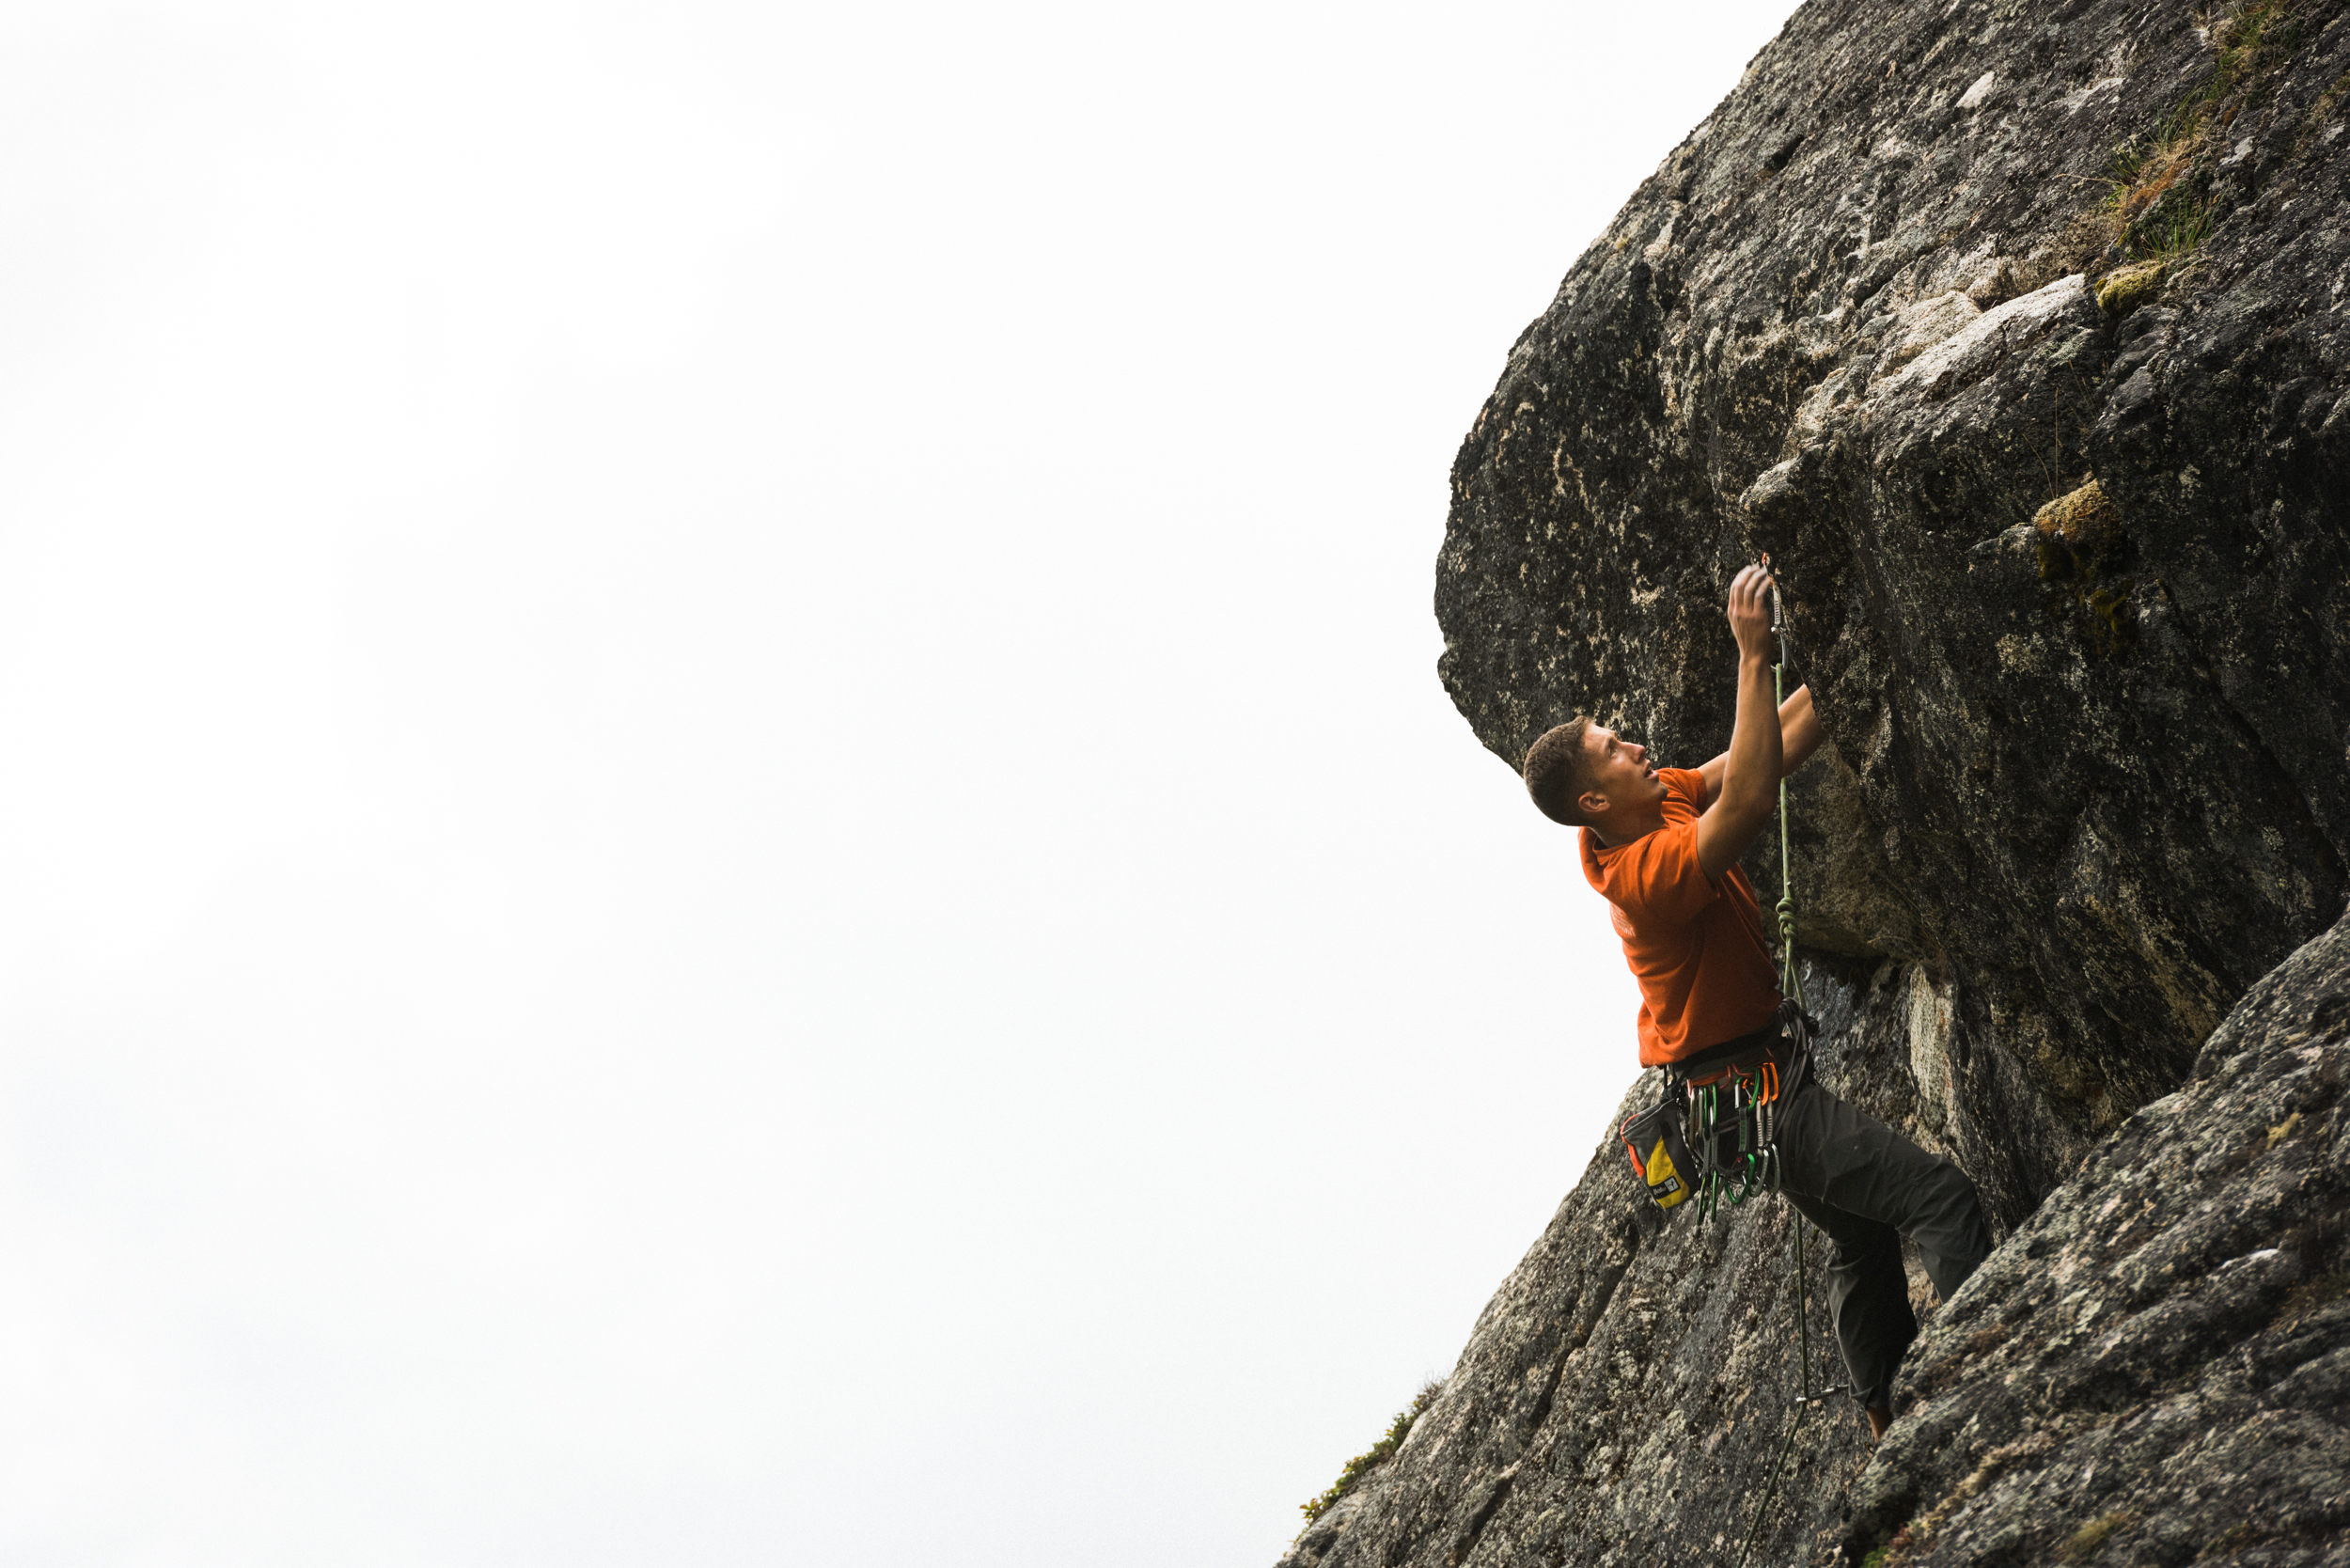 TaraShupe_Photography_Alaska_RockClimbing_HatchersPass_Travel_Photographer_Women_Adventure_052.jpg